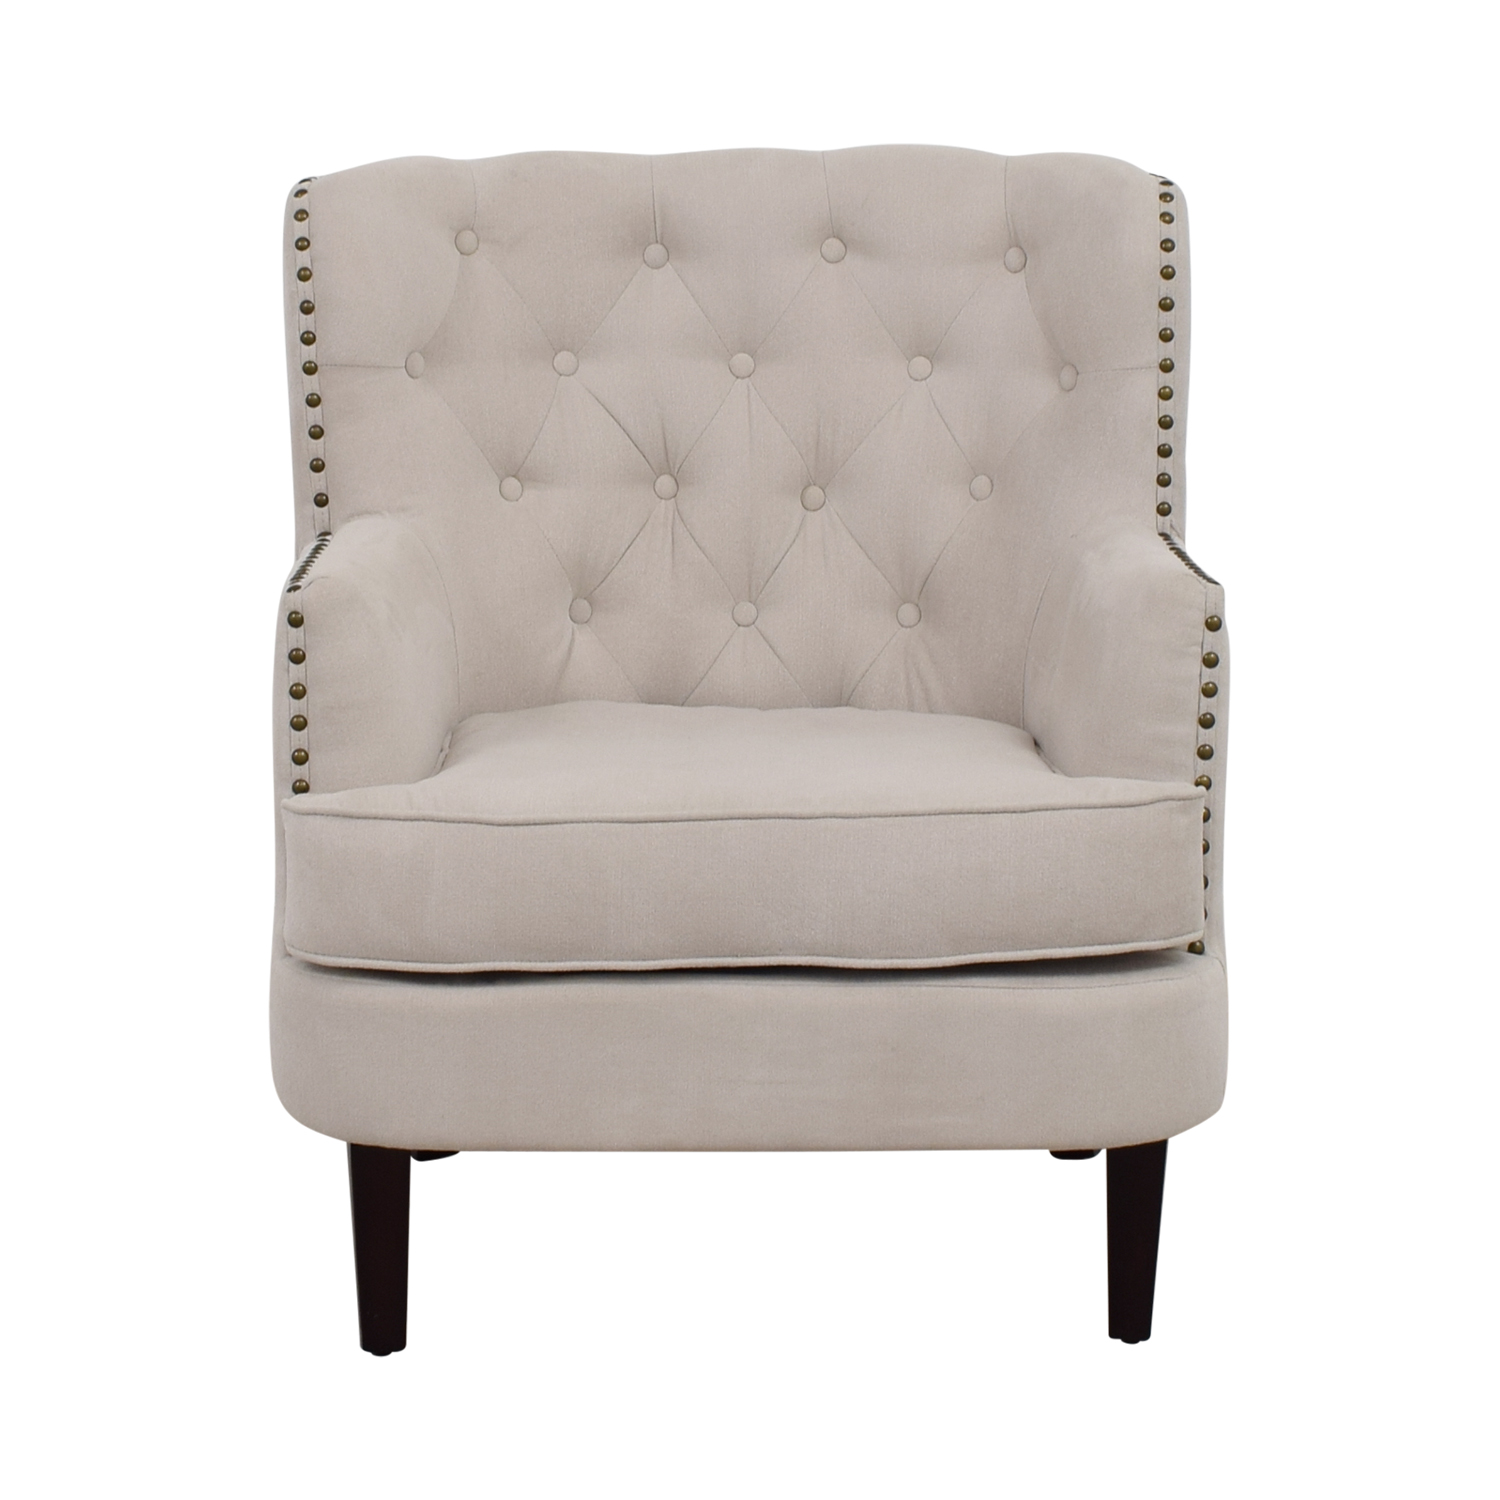 buy West Elm Chrisanna Beige Tufted Nailhead Wingback Chair West Elm Accent Chairs